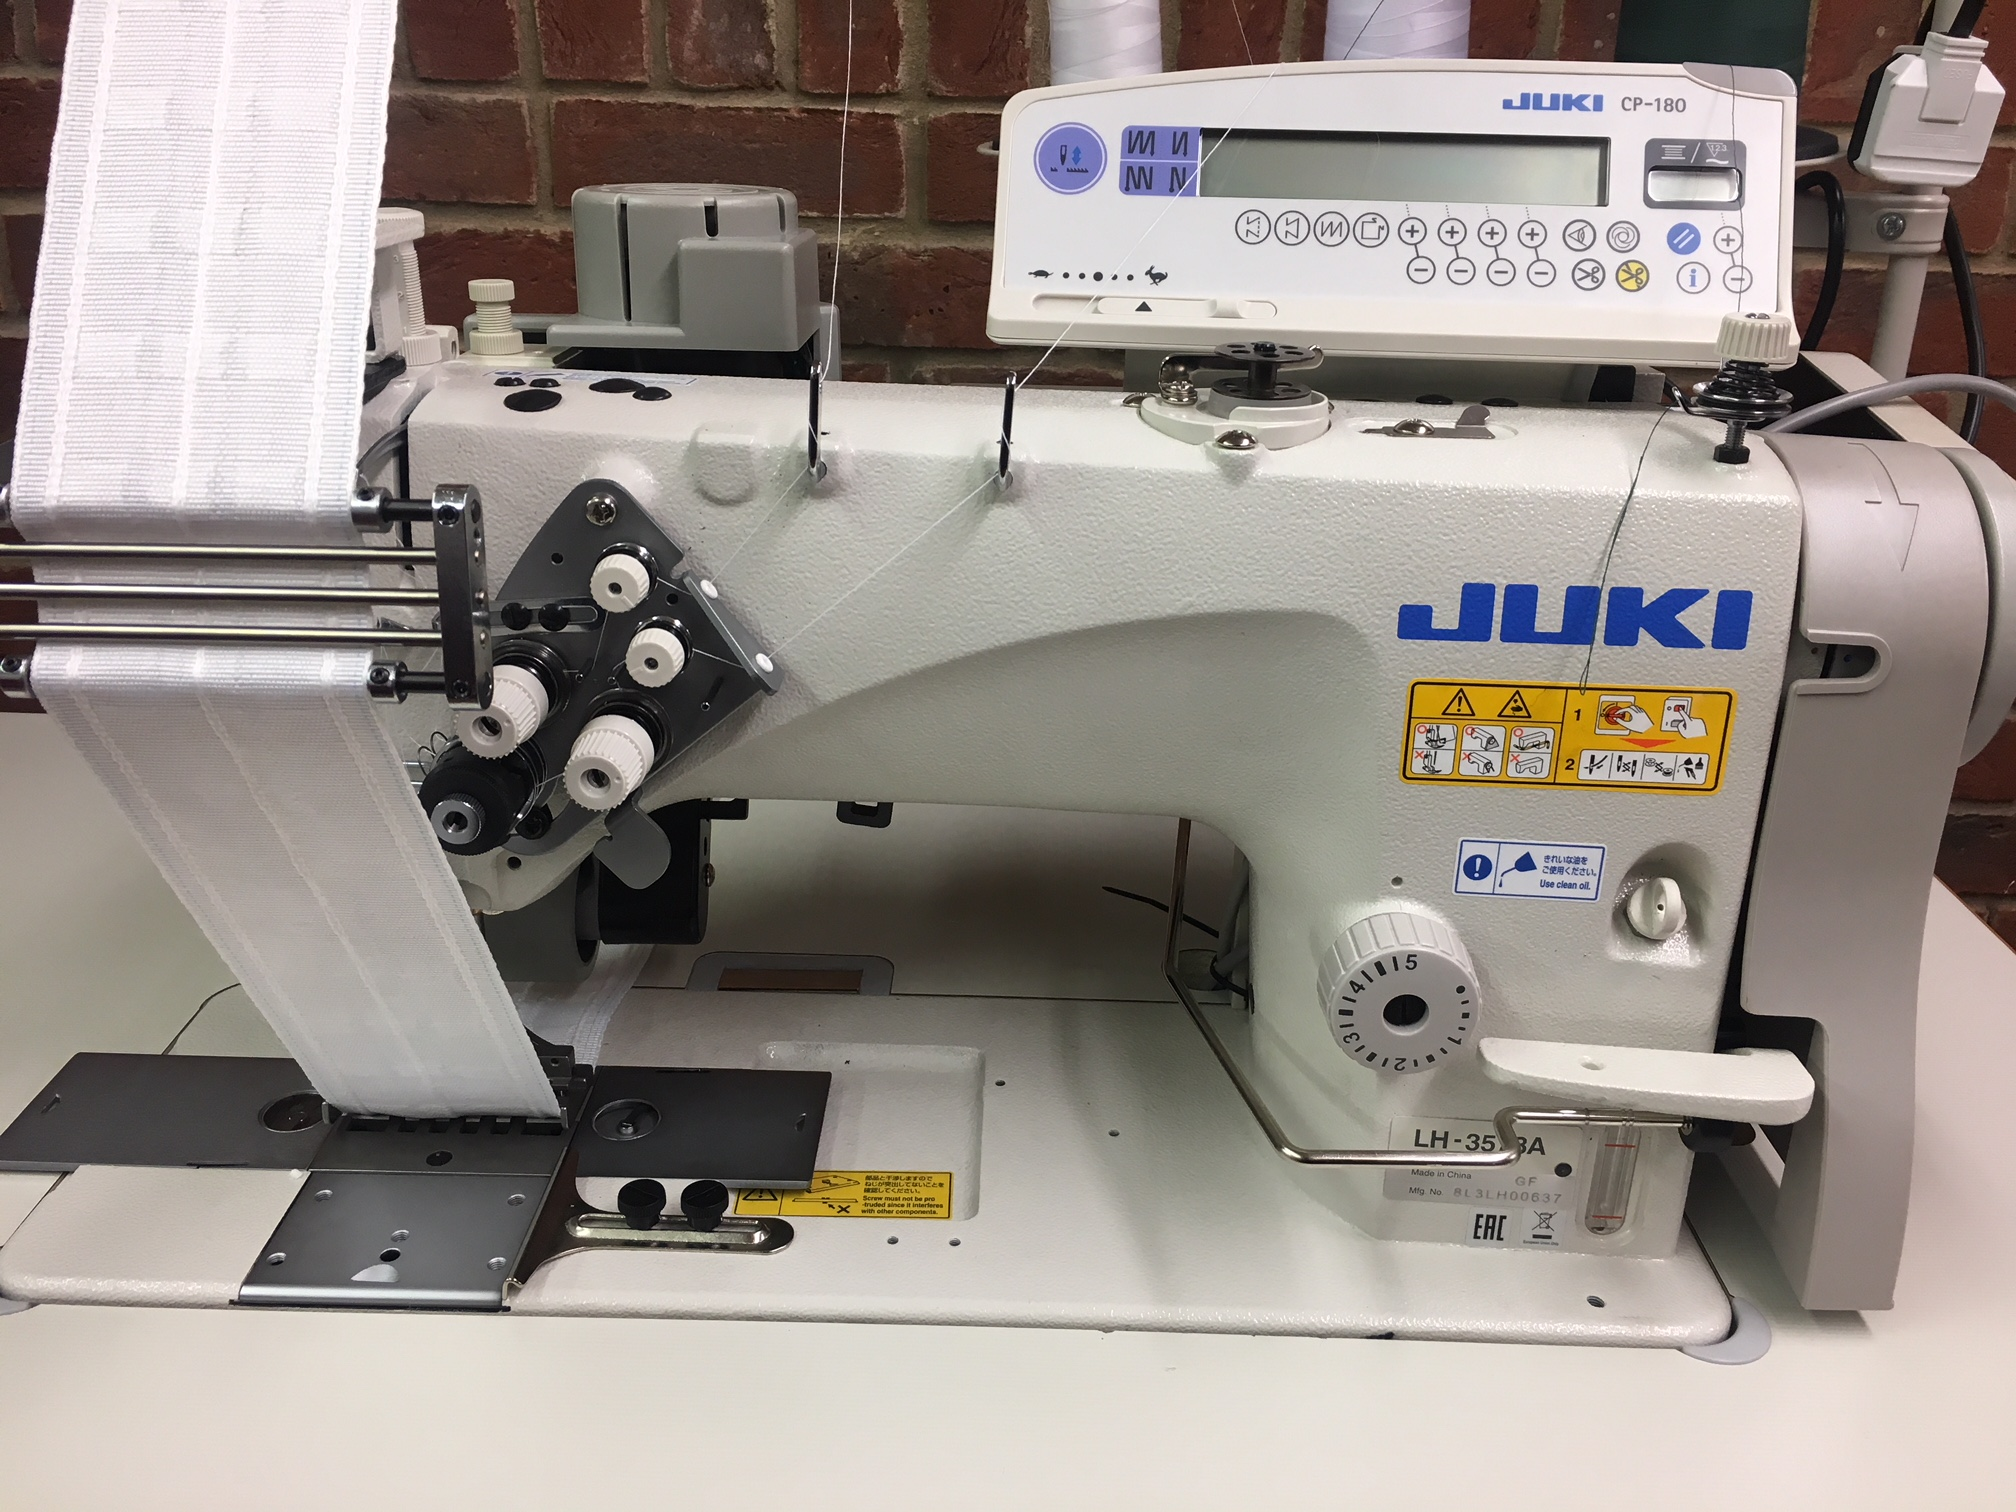 Juki LH-3578A 65mm doppio ago finezza 65mm